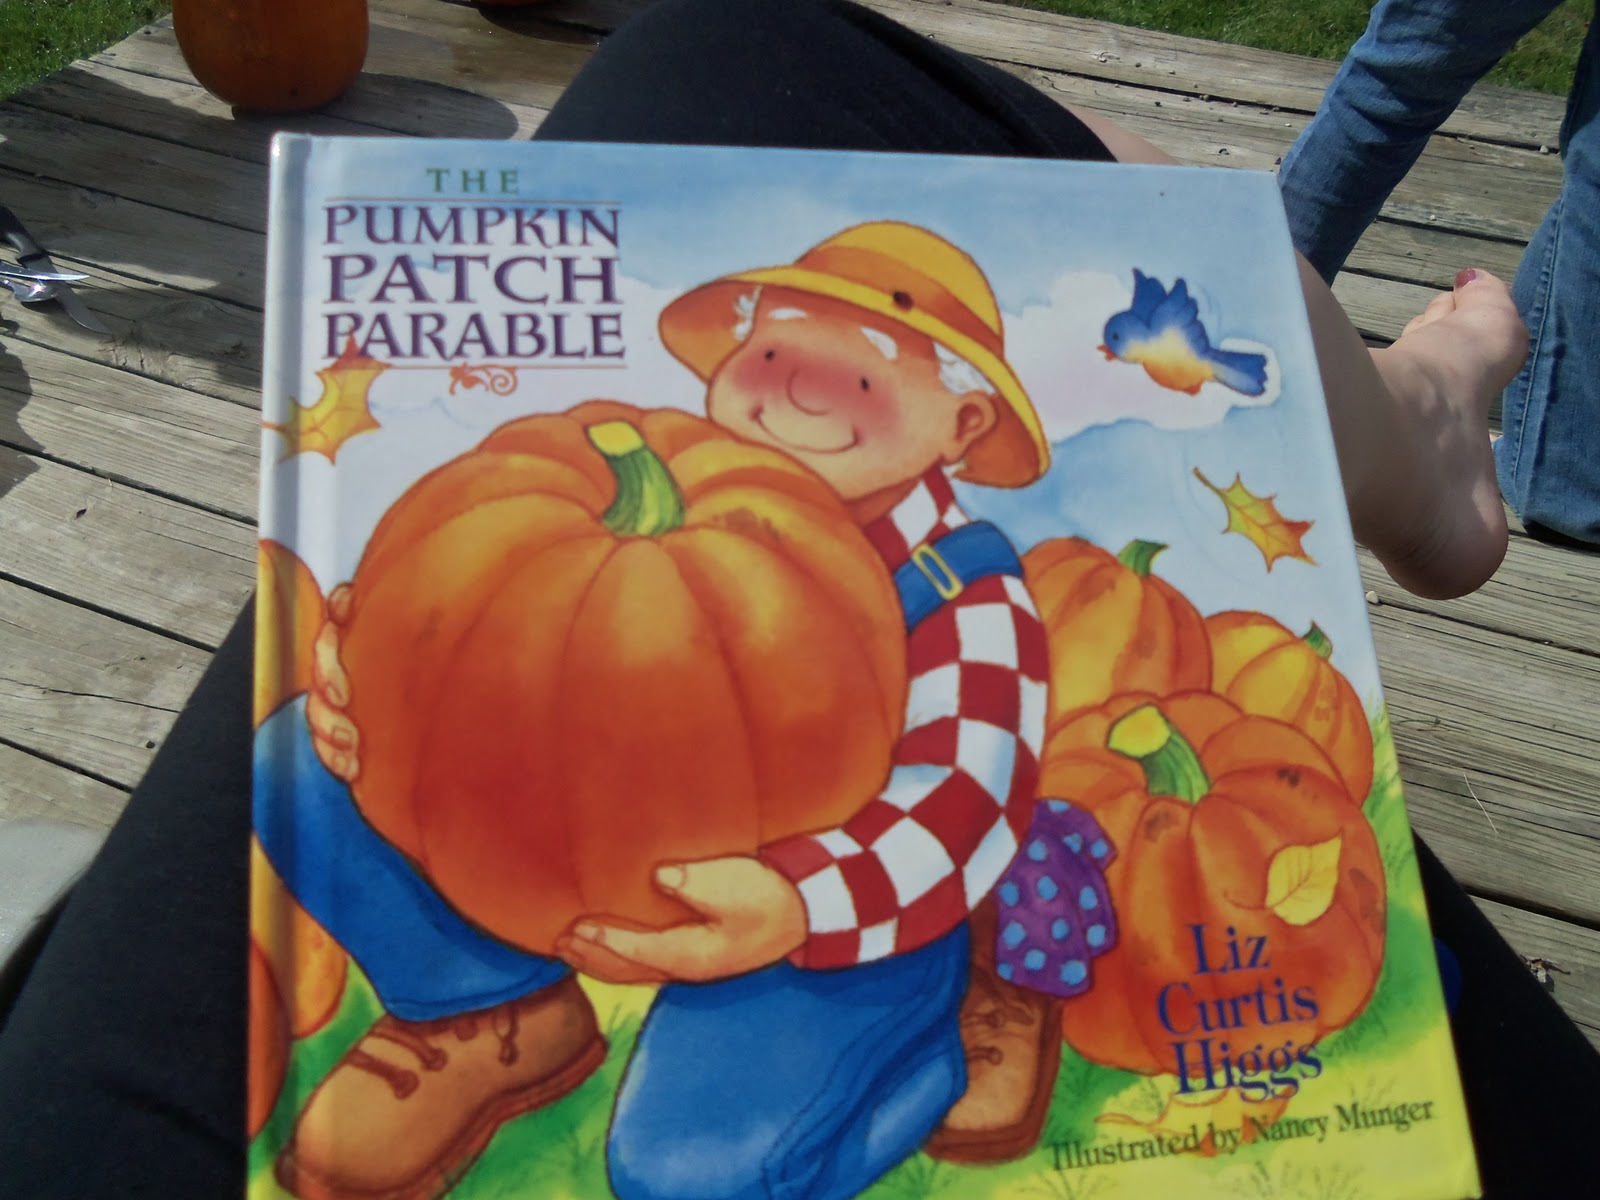 popular children's books, pumpkin patch